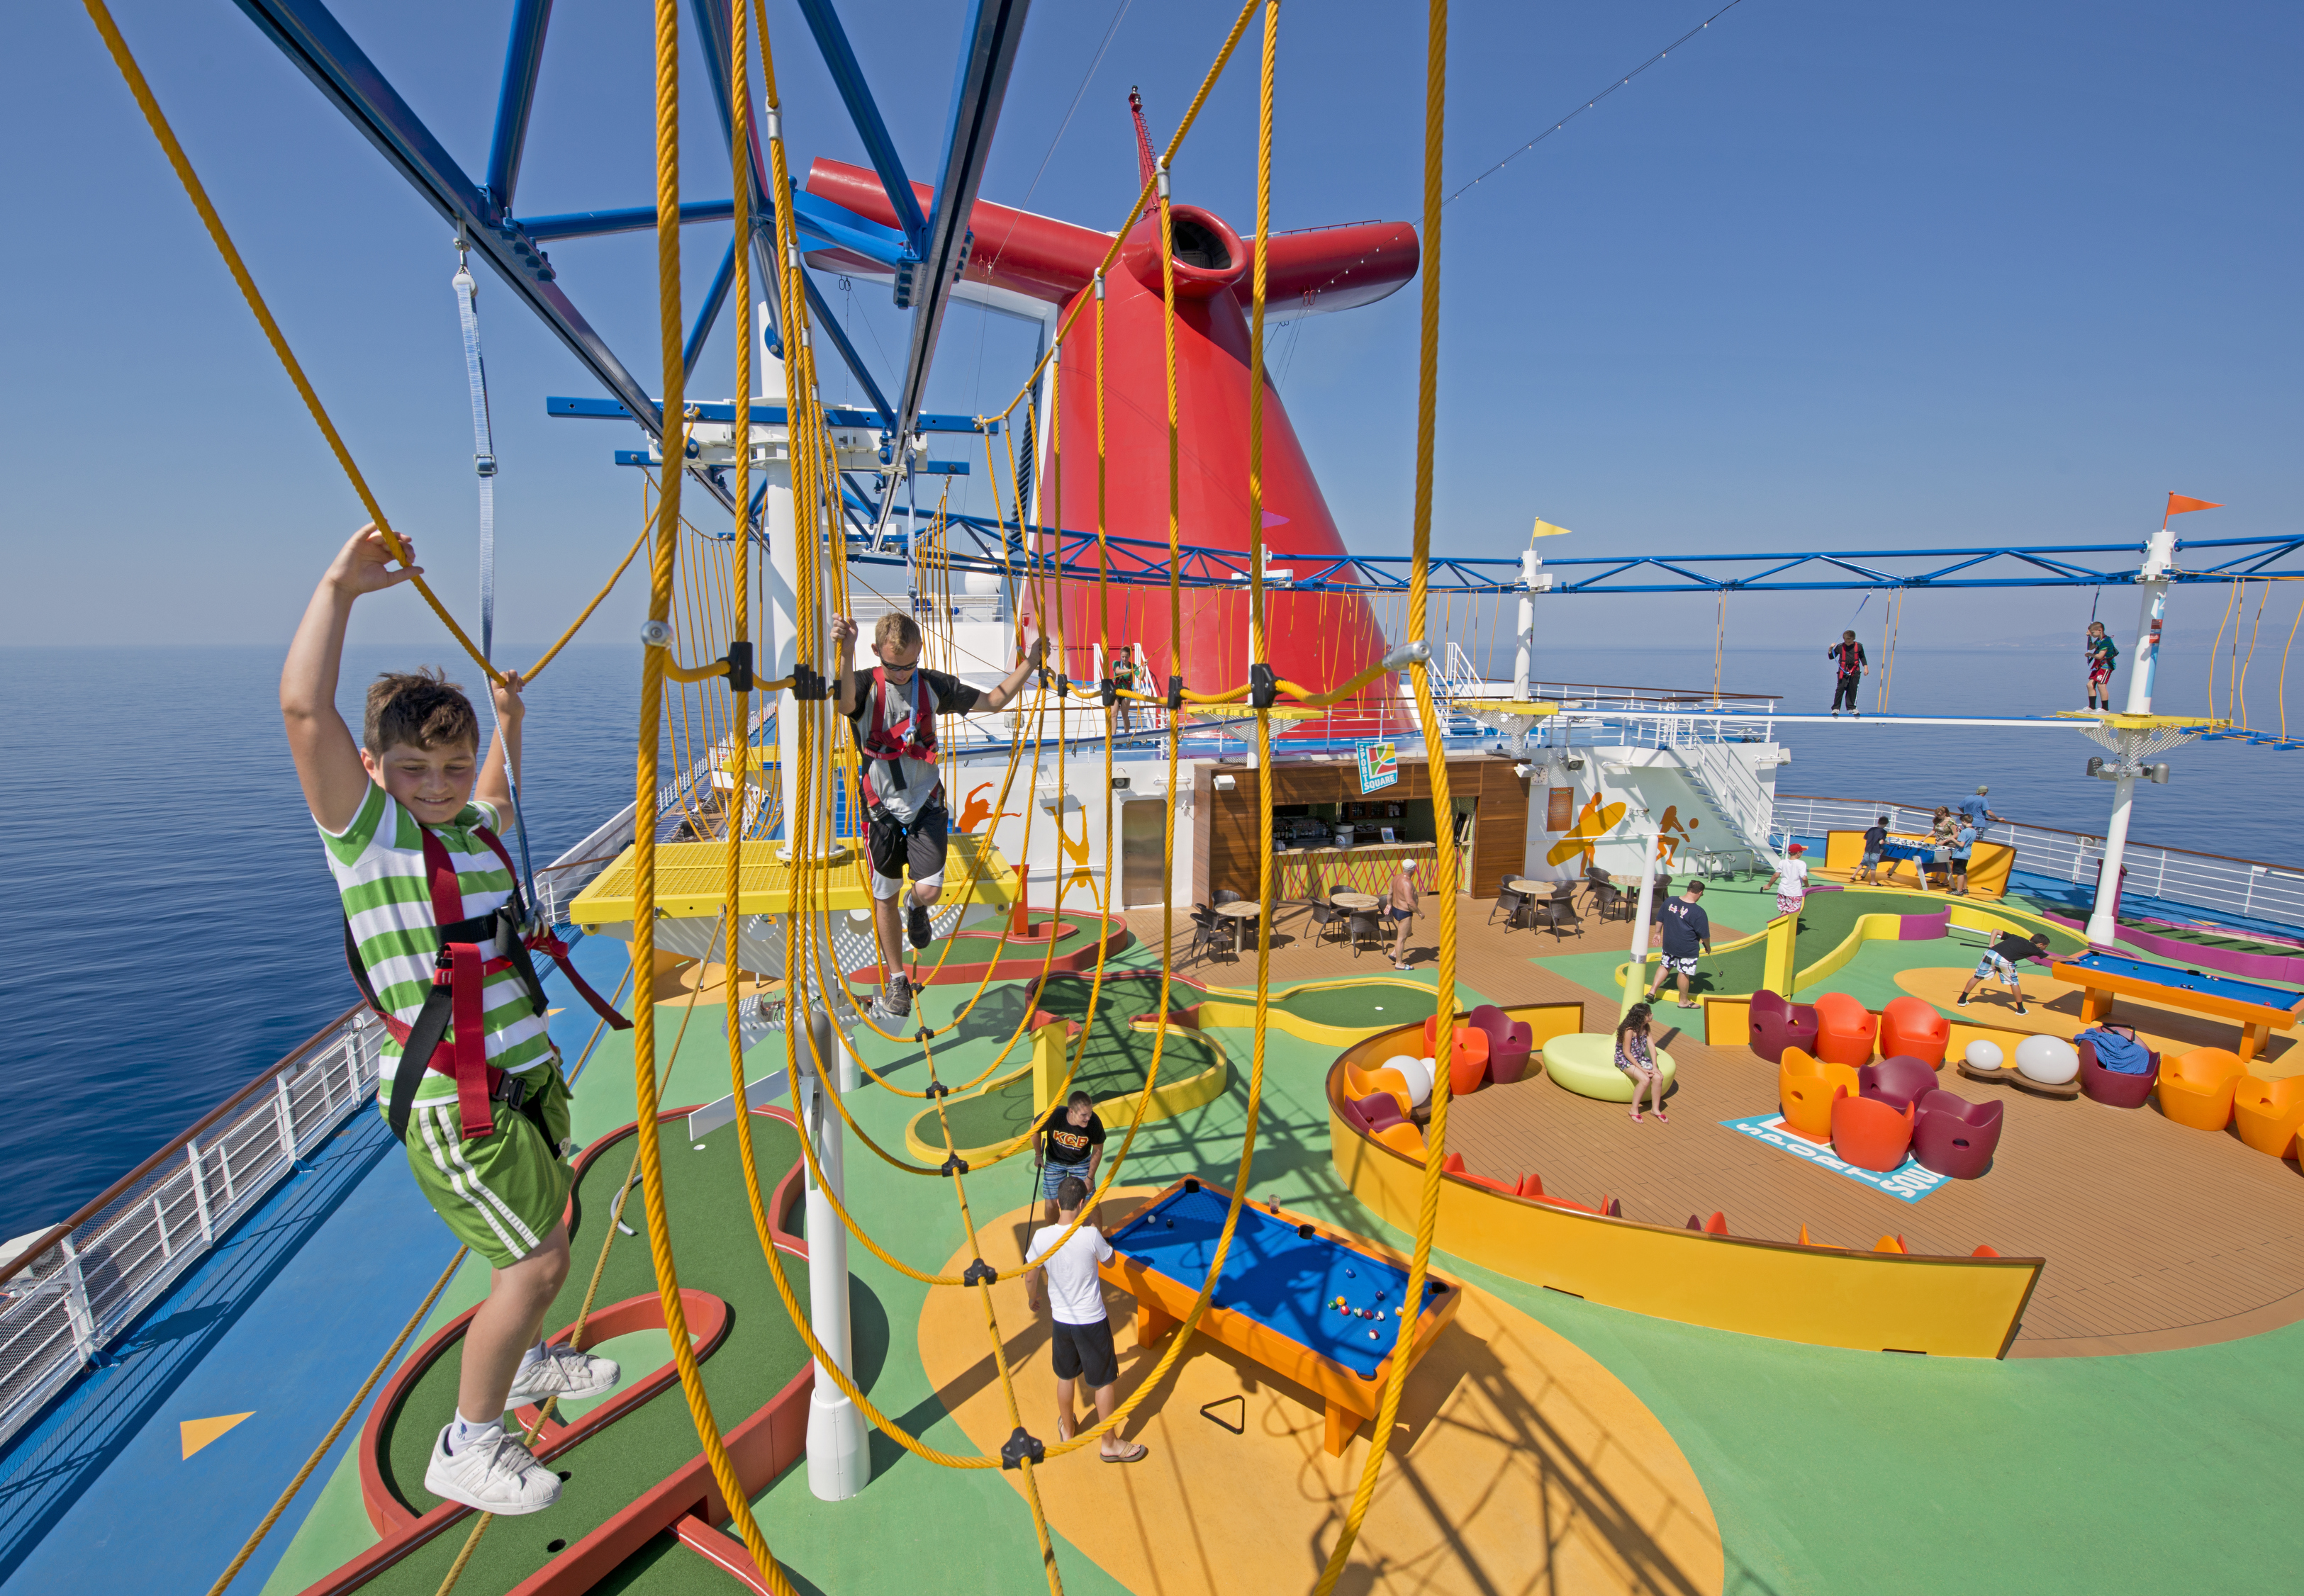 Carnival Breeze Earns Best Ship For Families, Best Shore Excursion Honors in Annual Cruise Critic Cruisers' Choice Awards